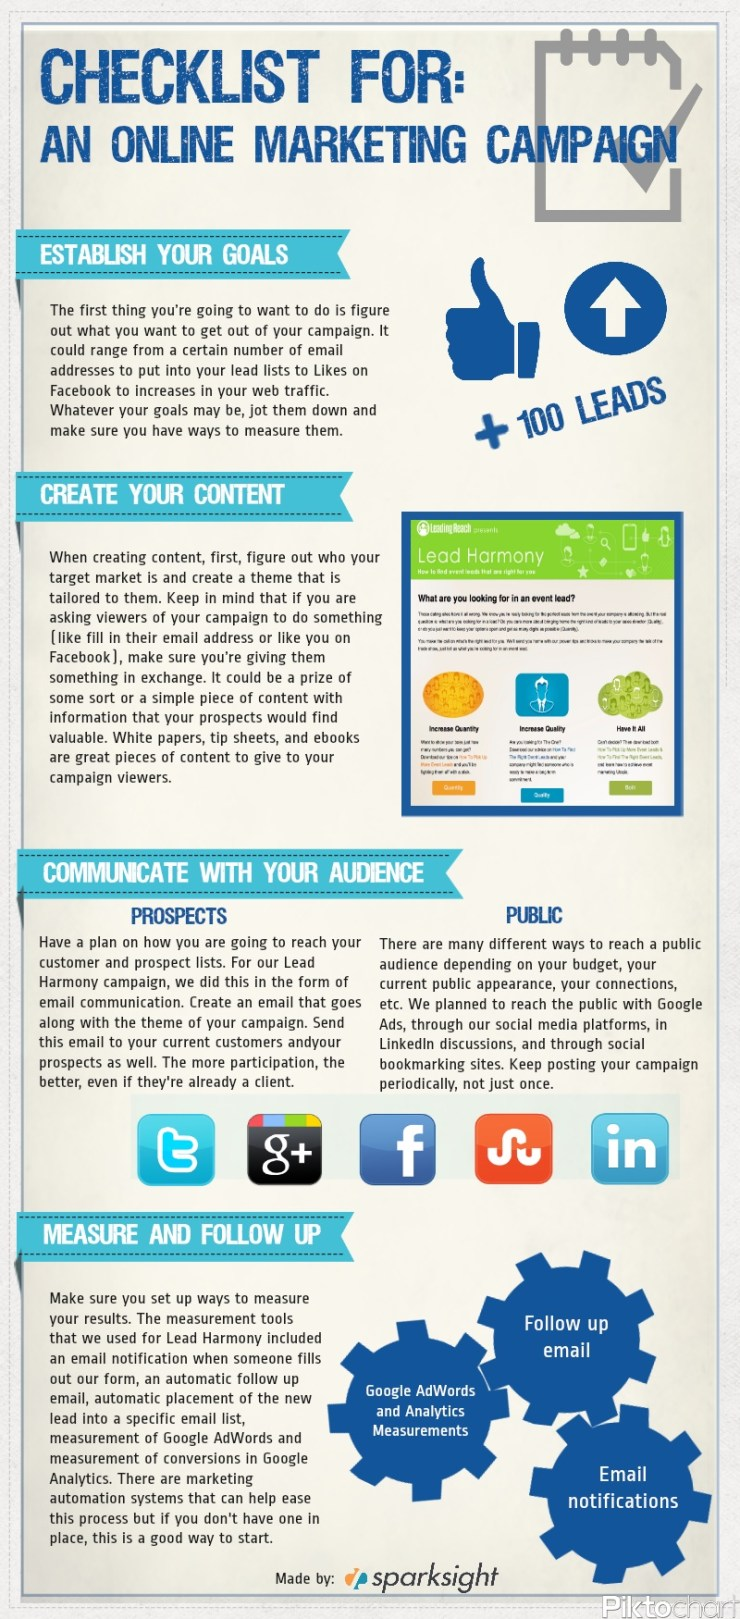 Checklist For an Online Marketing Campaign